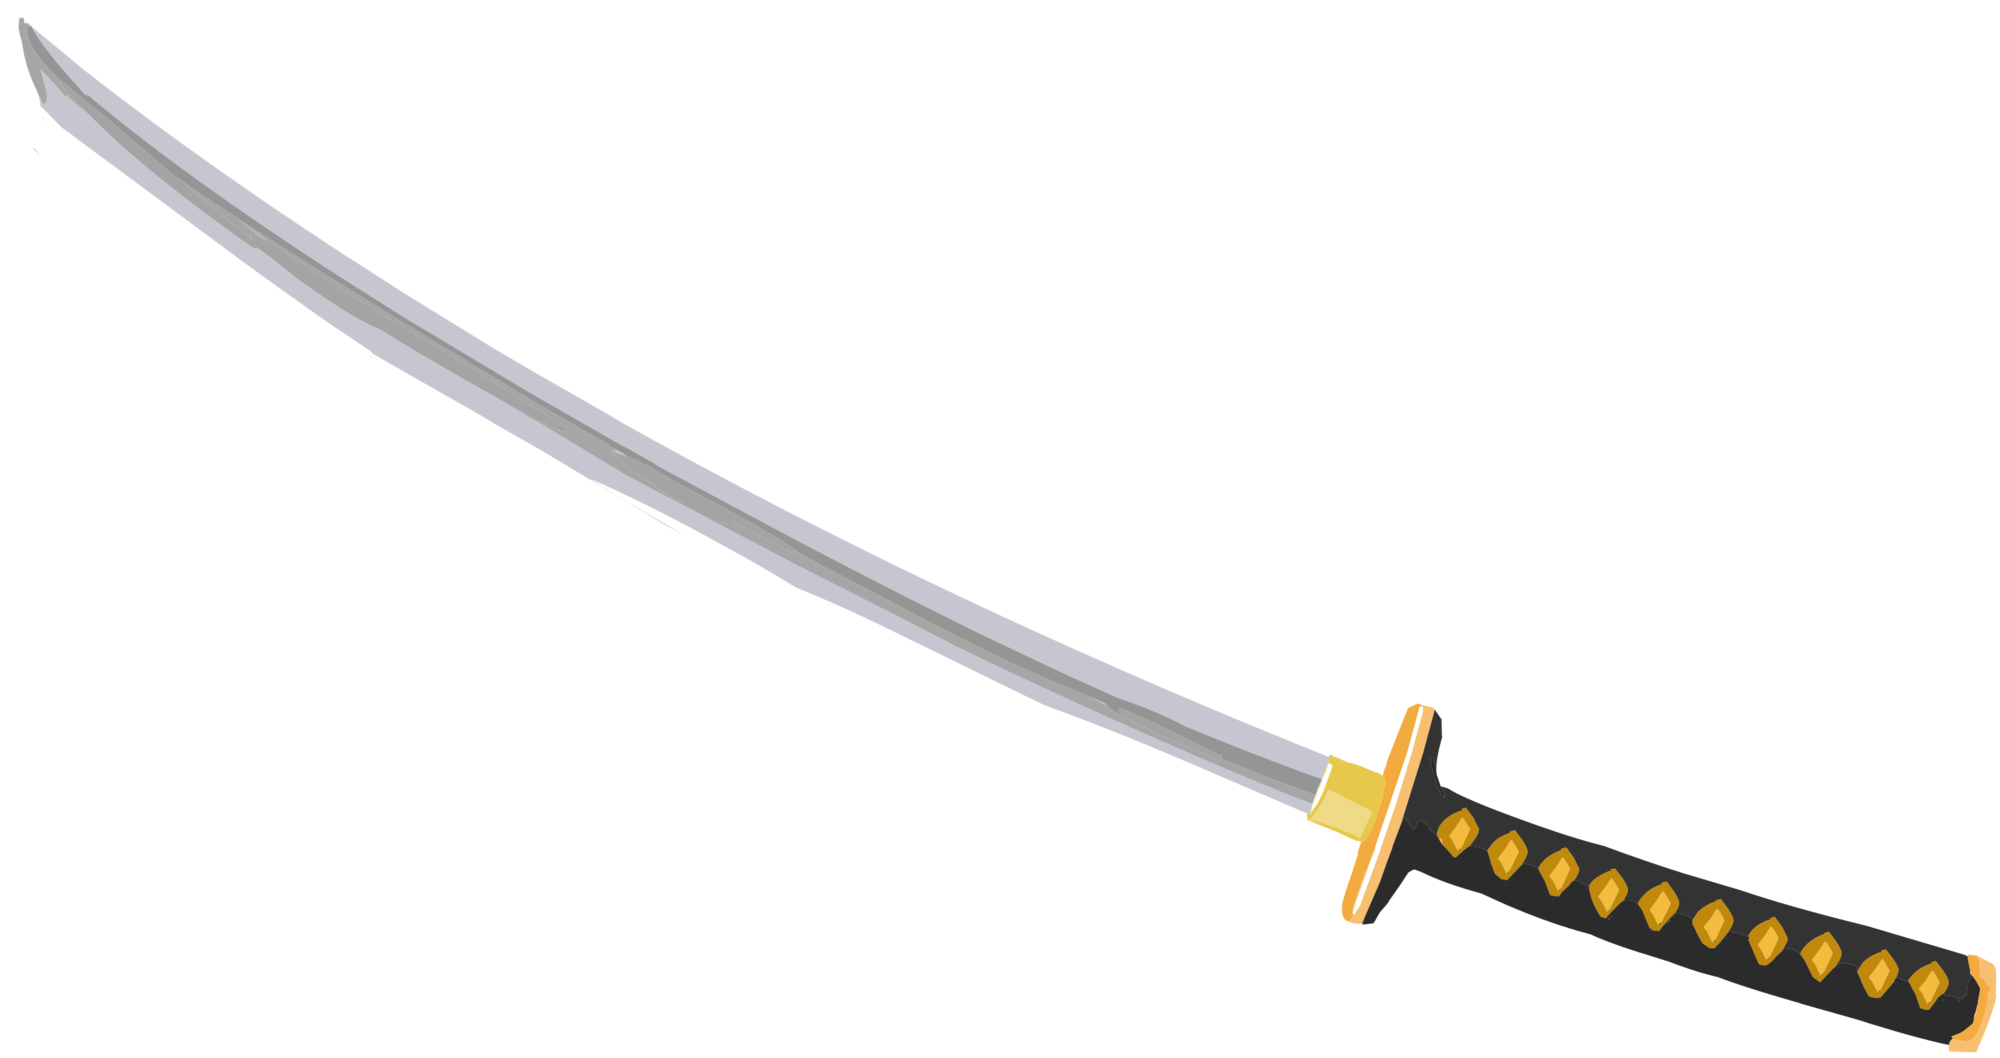 katana png images are download crazypngm crazy png images download #28742